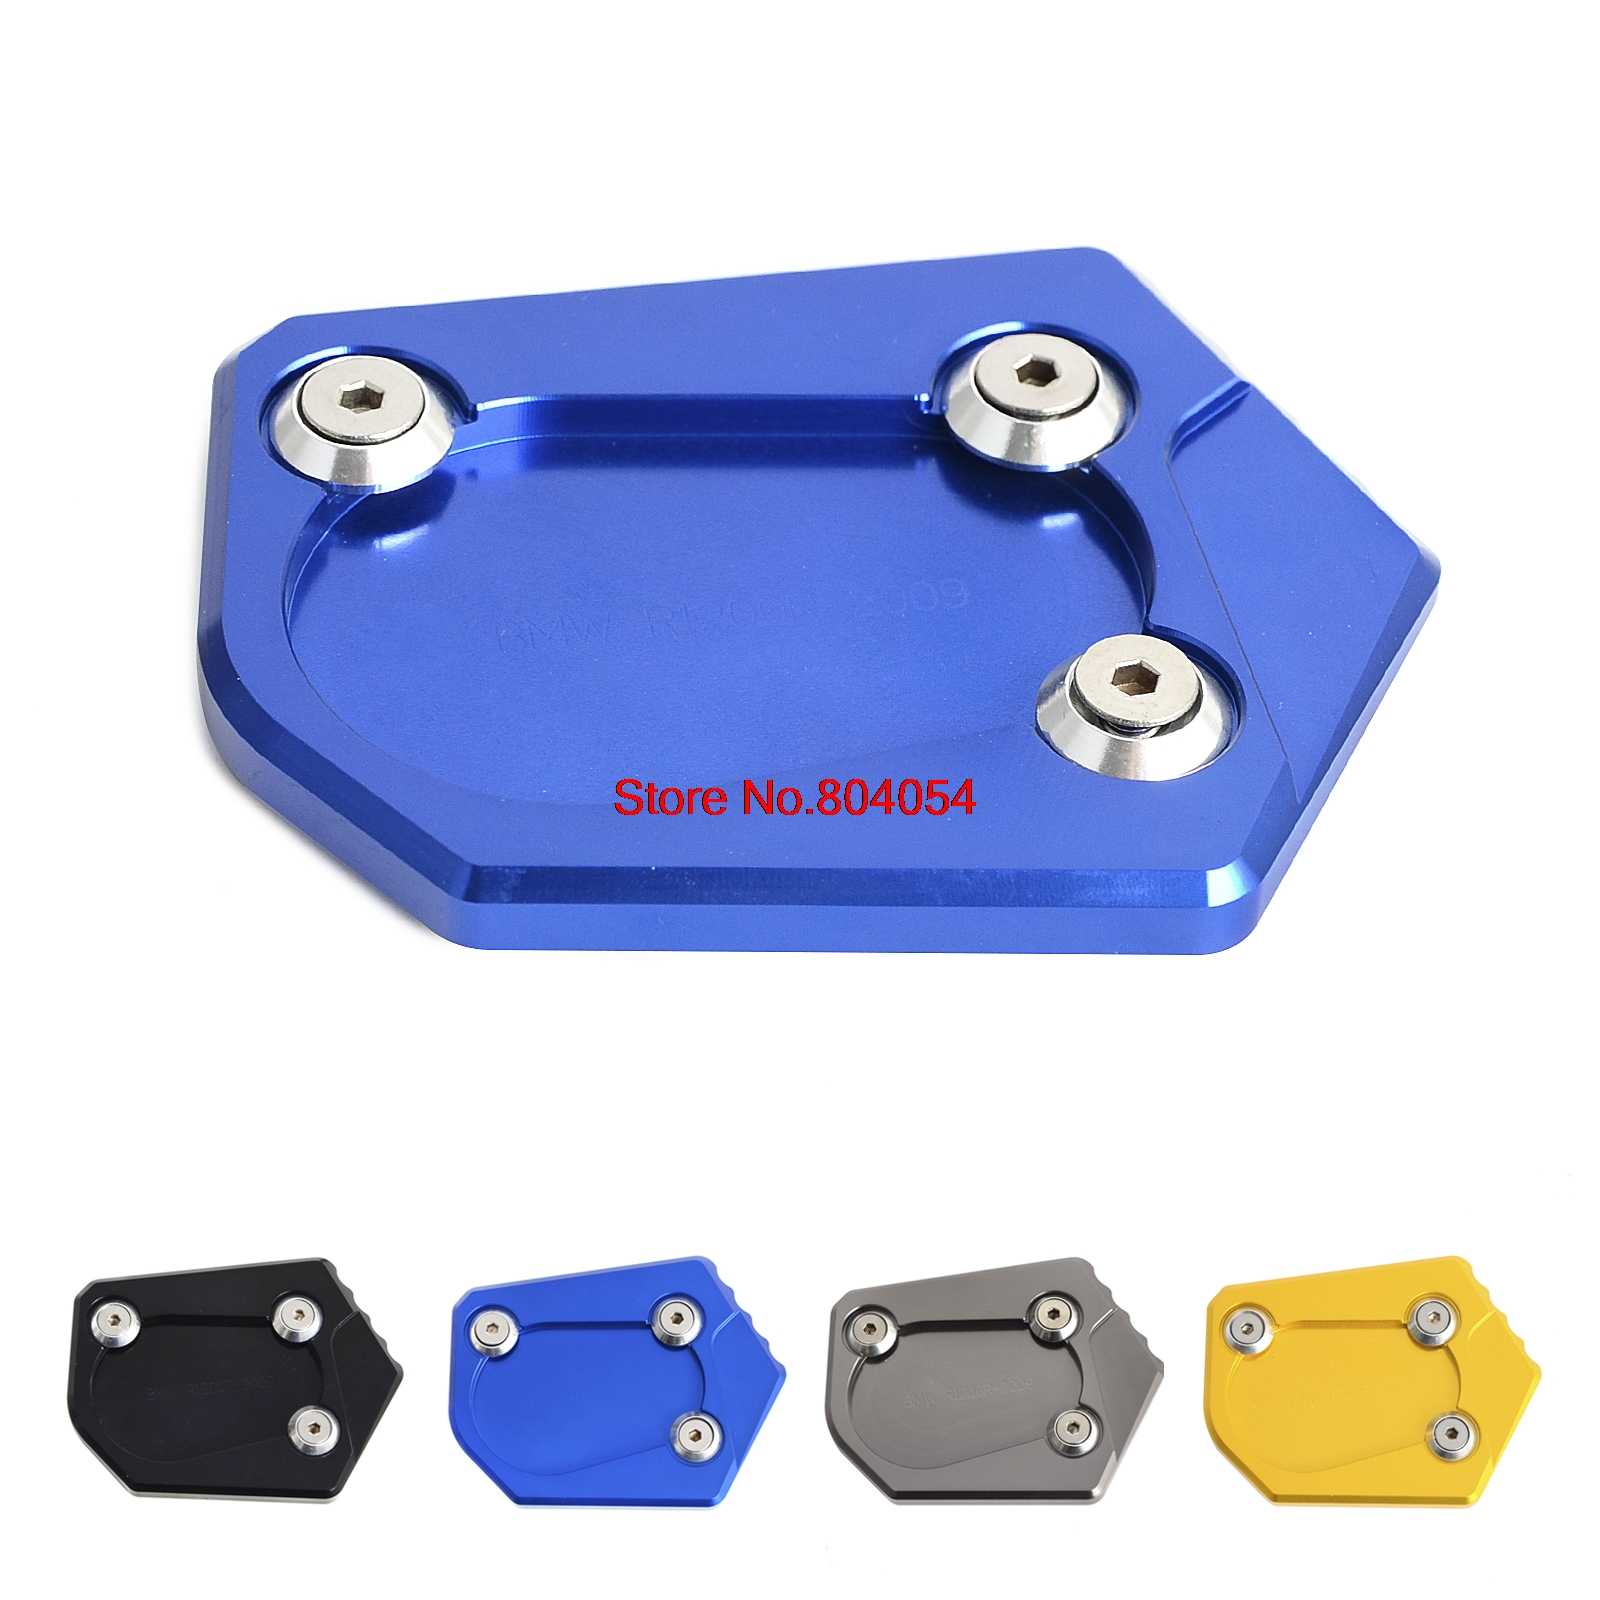 CNC Side Kickstand Stand Extension Plate For BMW R1200R 06-14 R1200RT 05-13 <font><b>R1200ST</b></font> 03-07 R900 RT 2009 2010 image